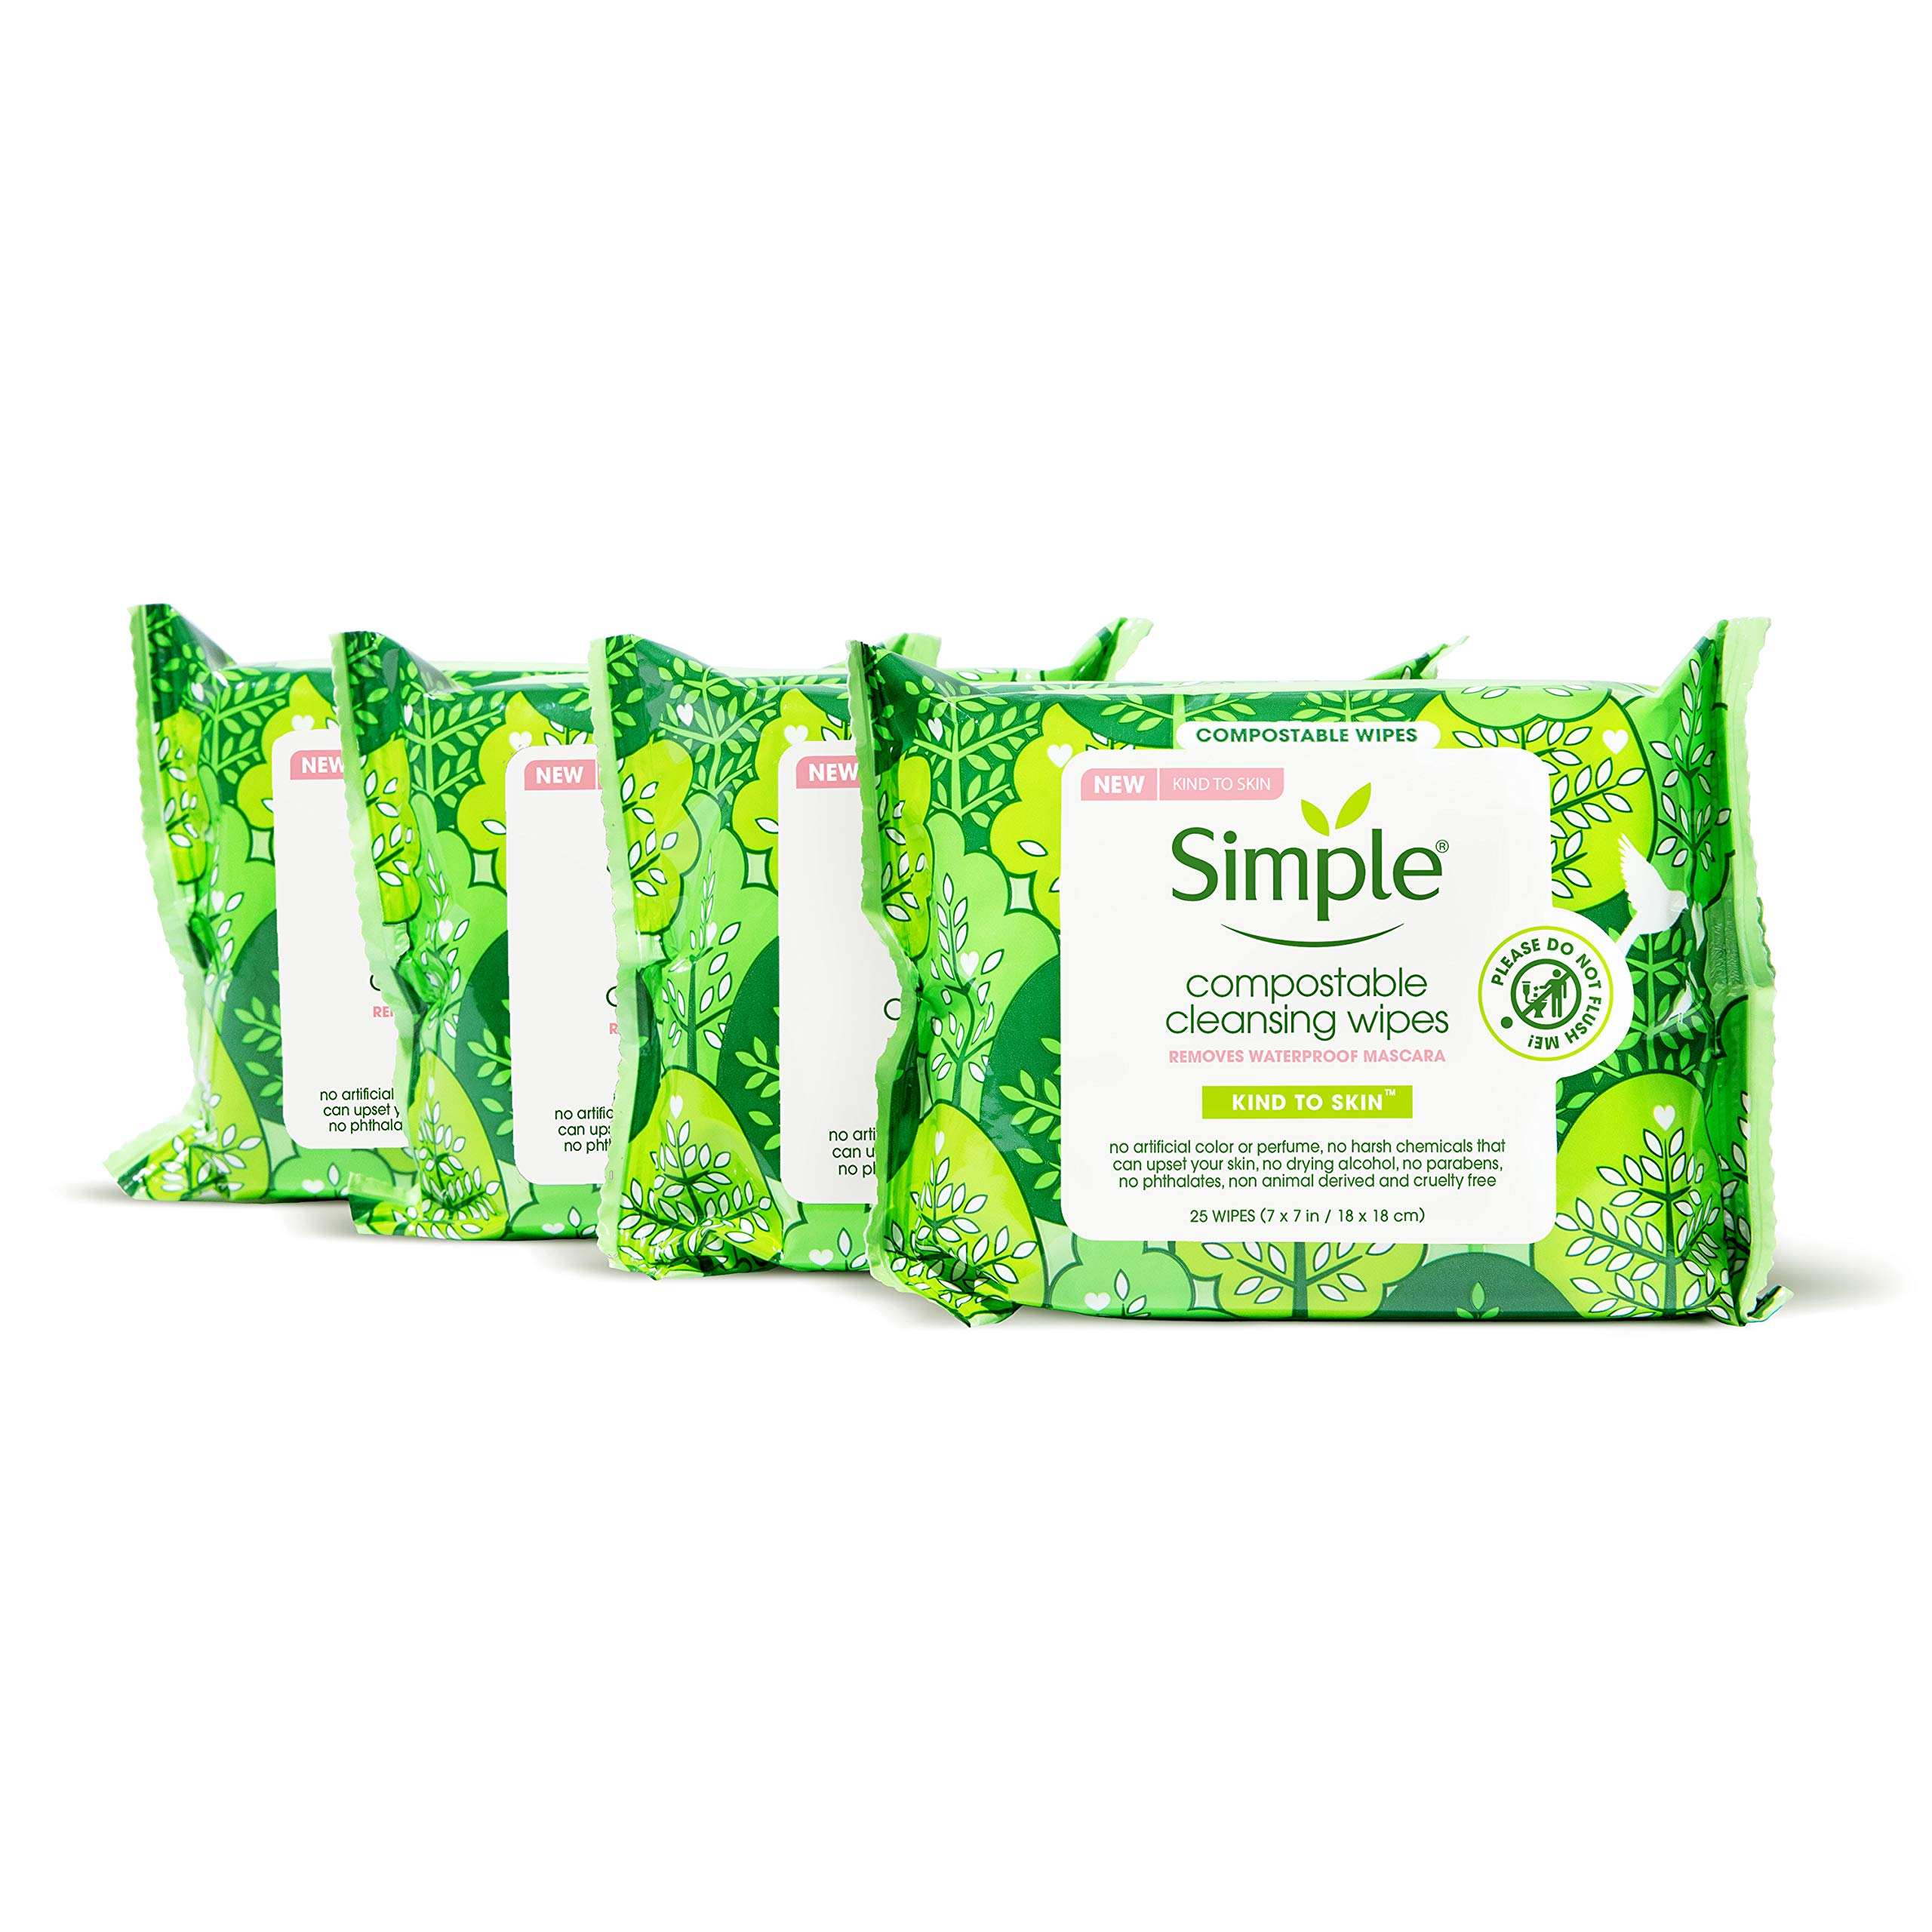 SIMPLE FACE Kind to Skin Cleansing Wipes For Facial Cleansing Compostable Wipes Removes Waterproof Mascara 25 Count, 4 Pack